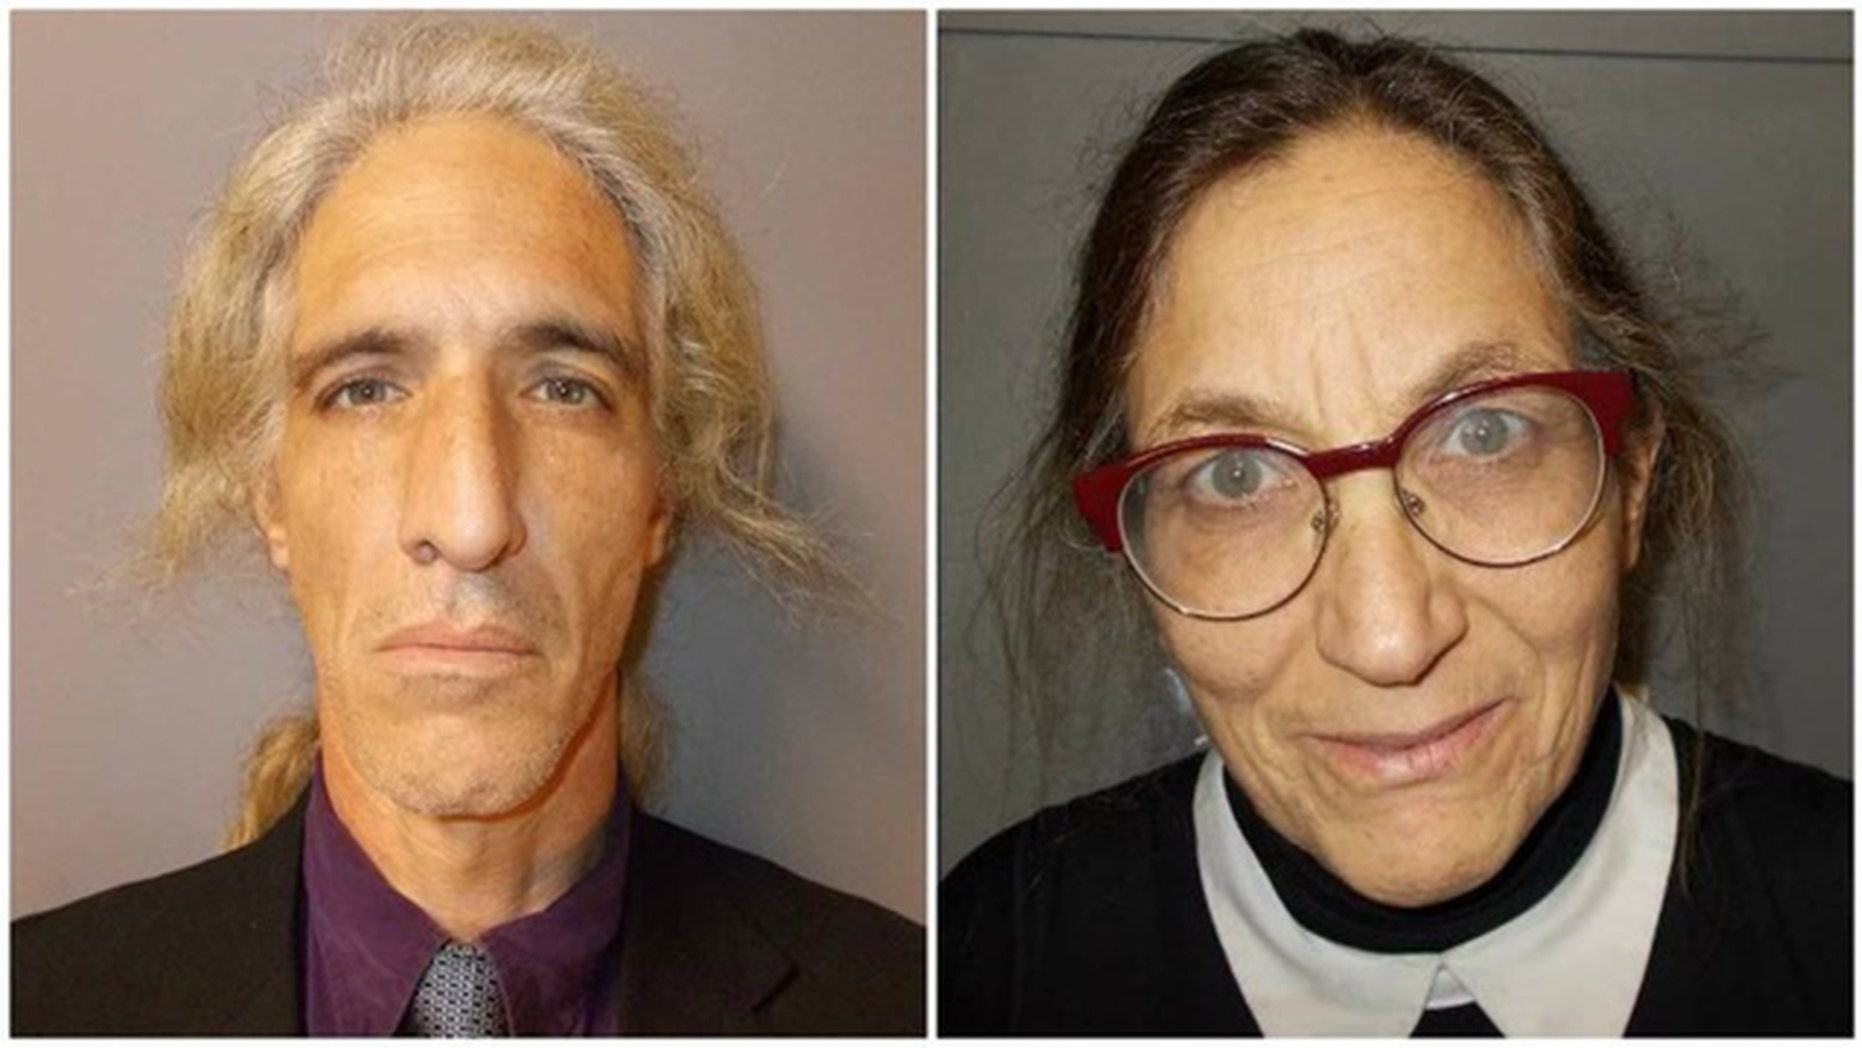 Alan Gordon, 48, and Anne Armstrong, 58, - who are running for Rhode Island attorney general and governor, respectively -  were arrested for having 48 pounds of marijuana, police said.